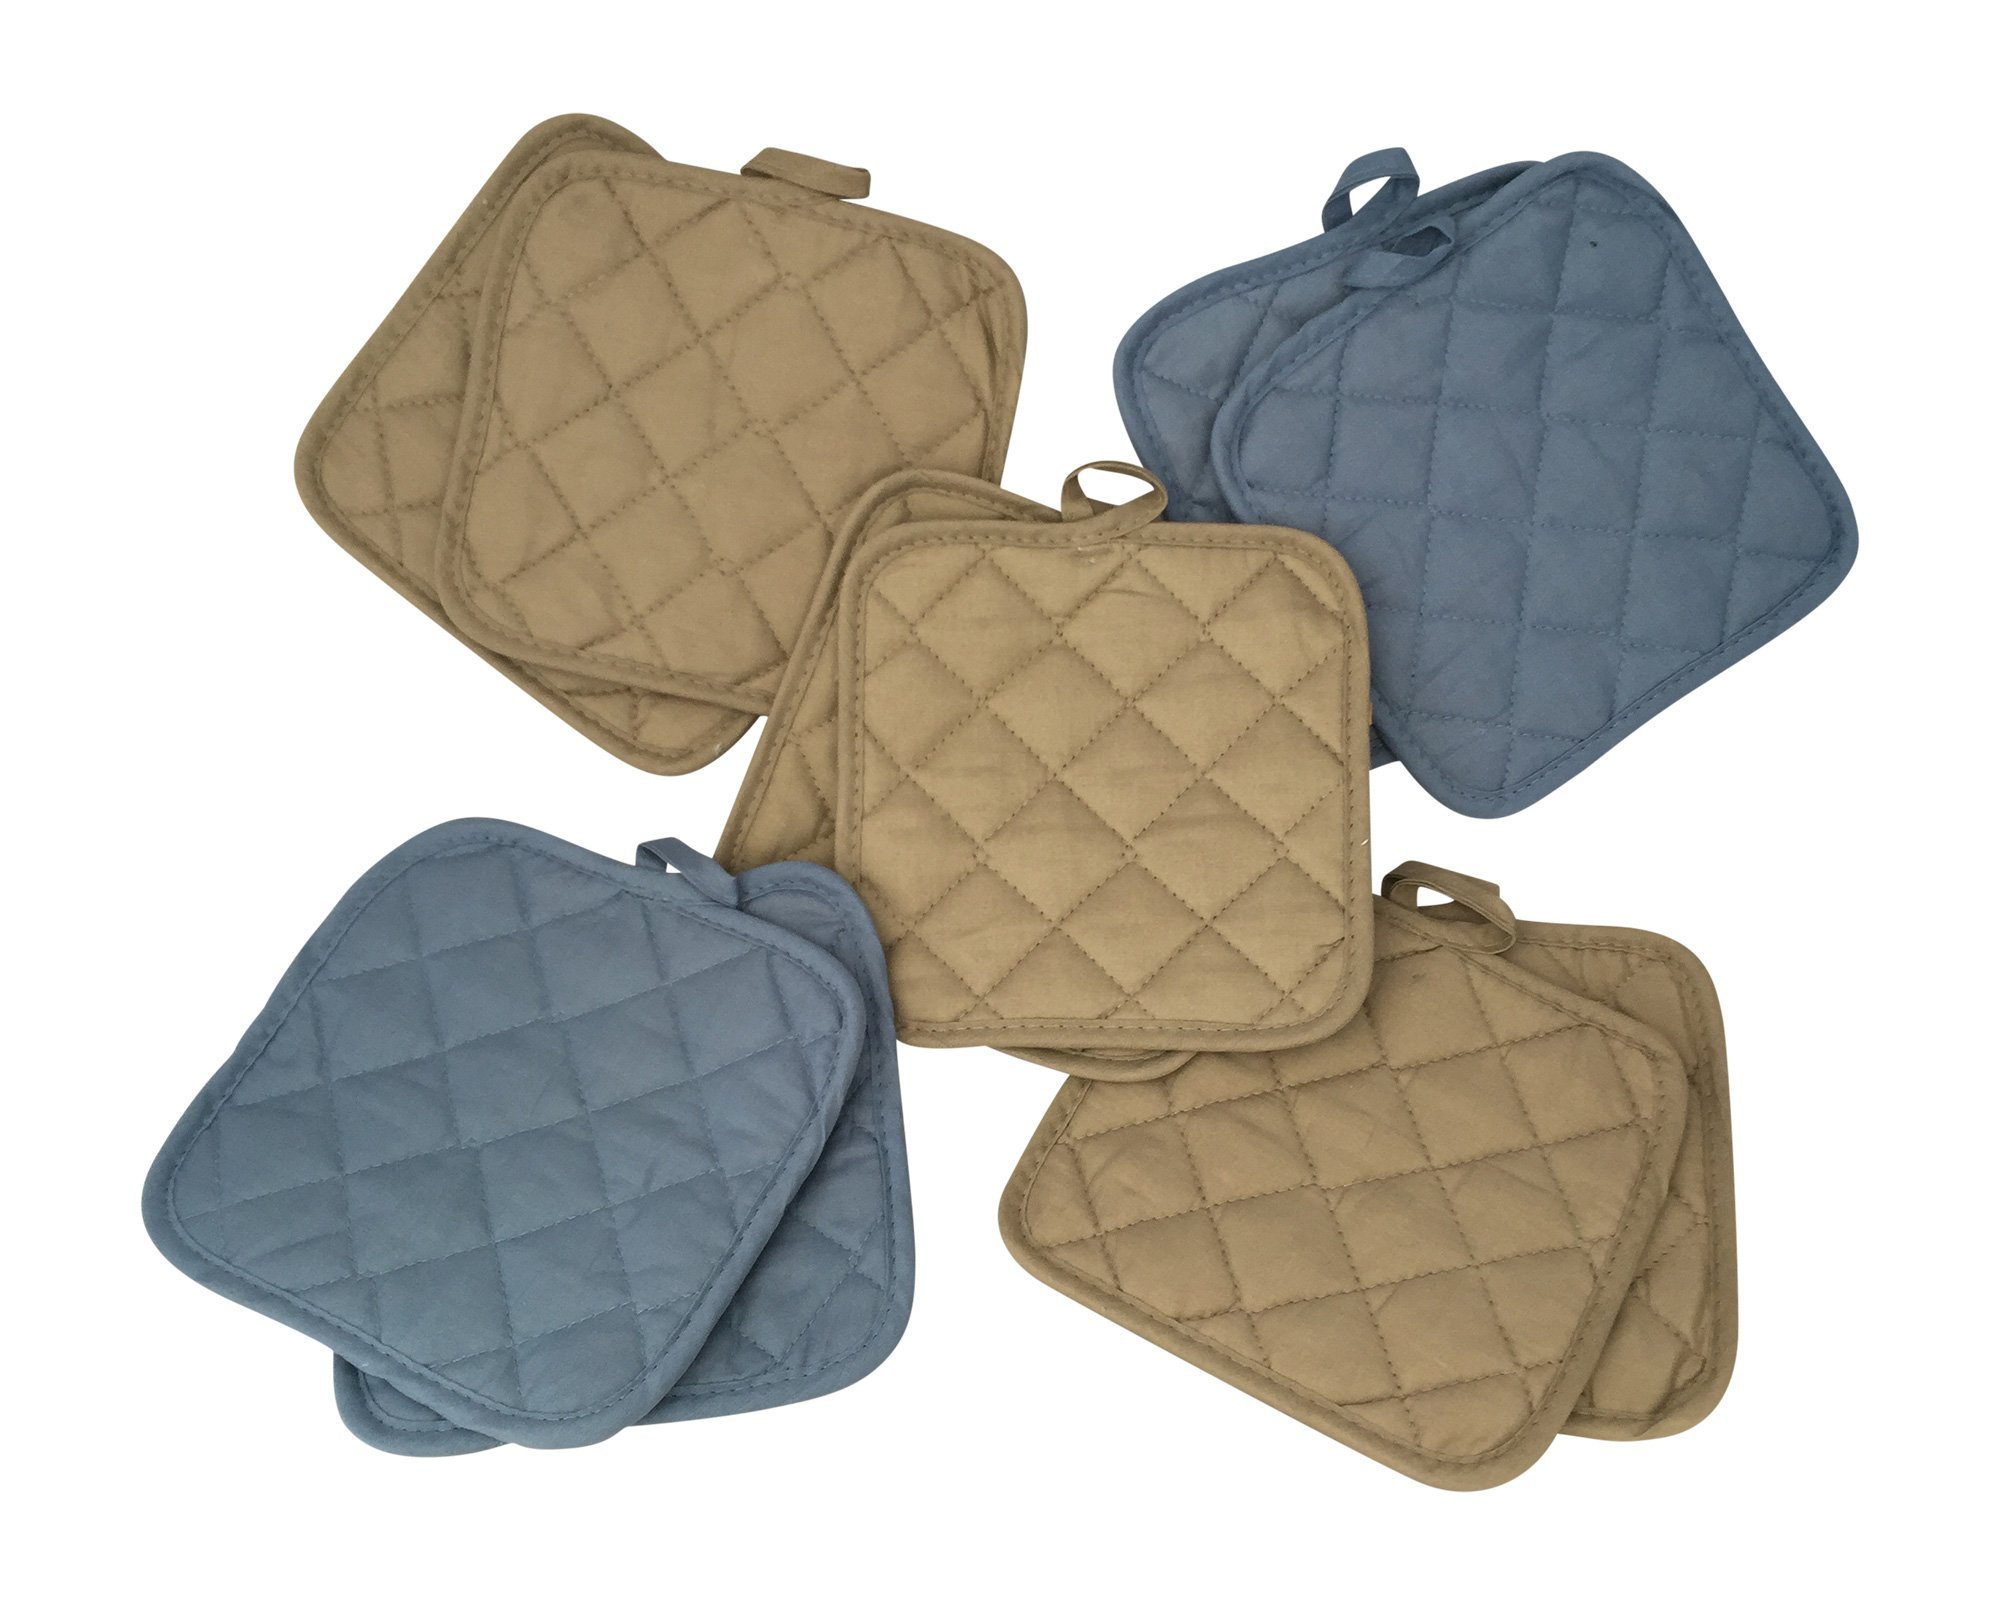 5 (FIVE) Sets of The Home Store Cotton Pot Holders, 2-ct. Color Variety Pack Kitchen Cooking Chef Linens (Blue & Tan)